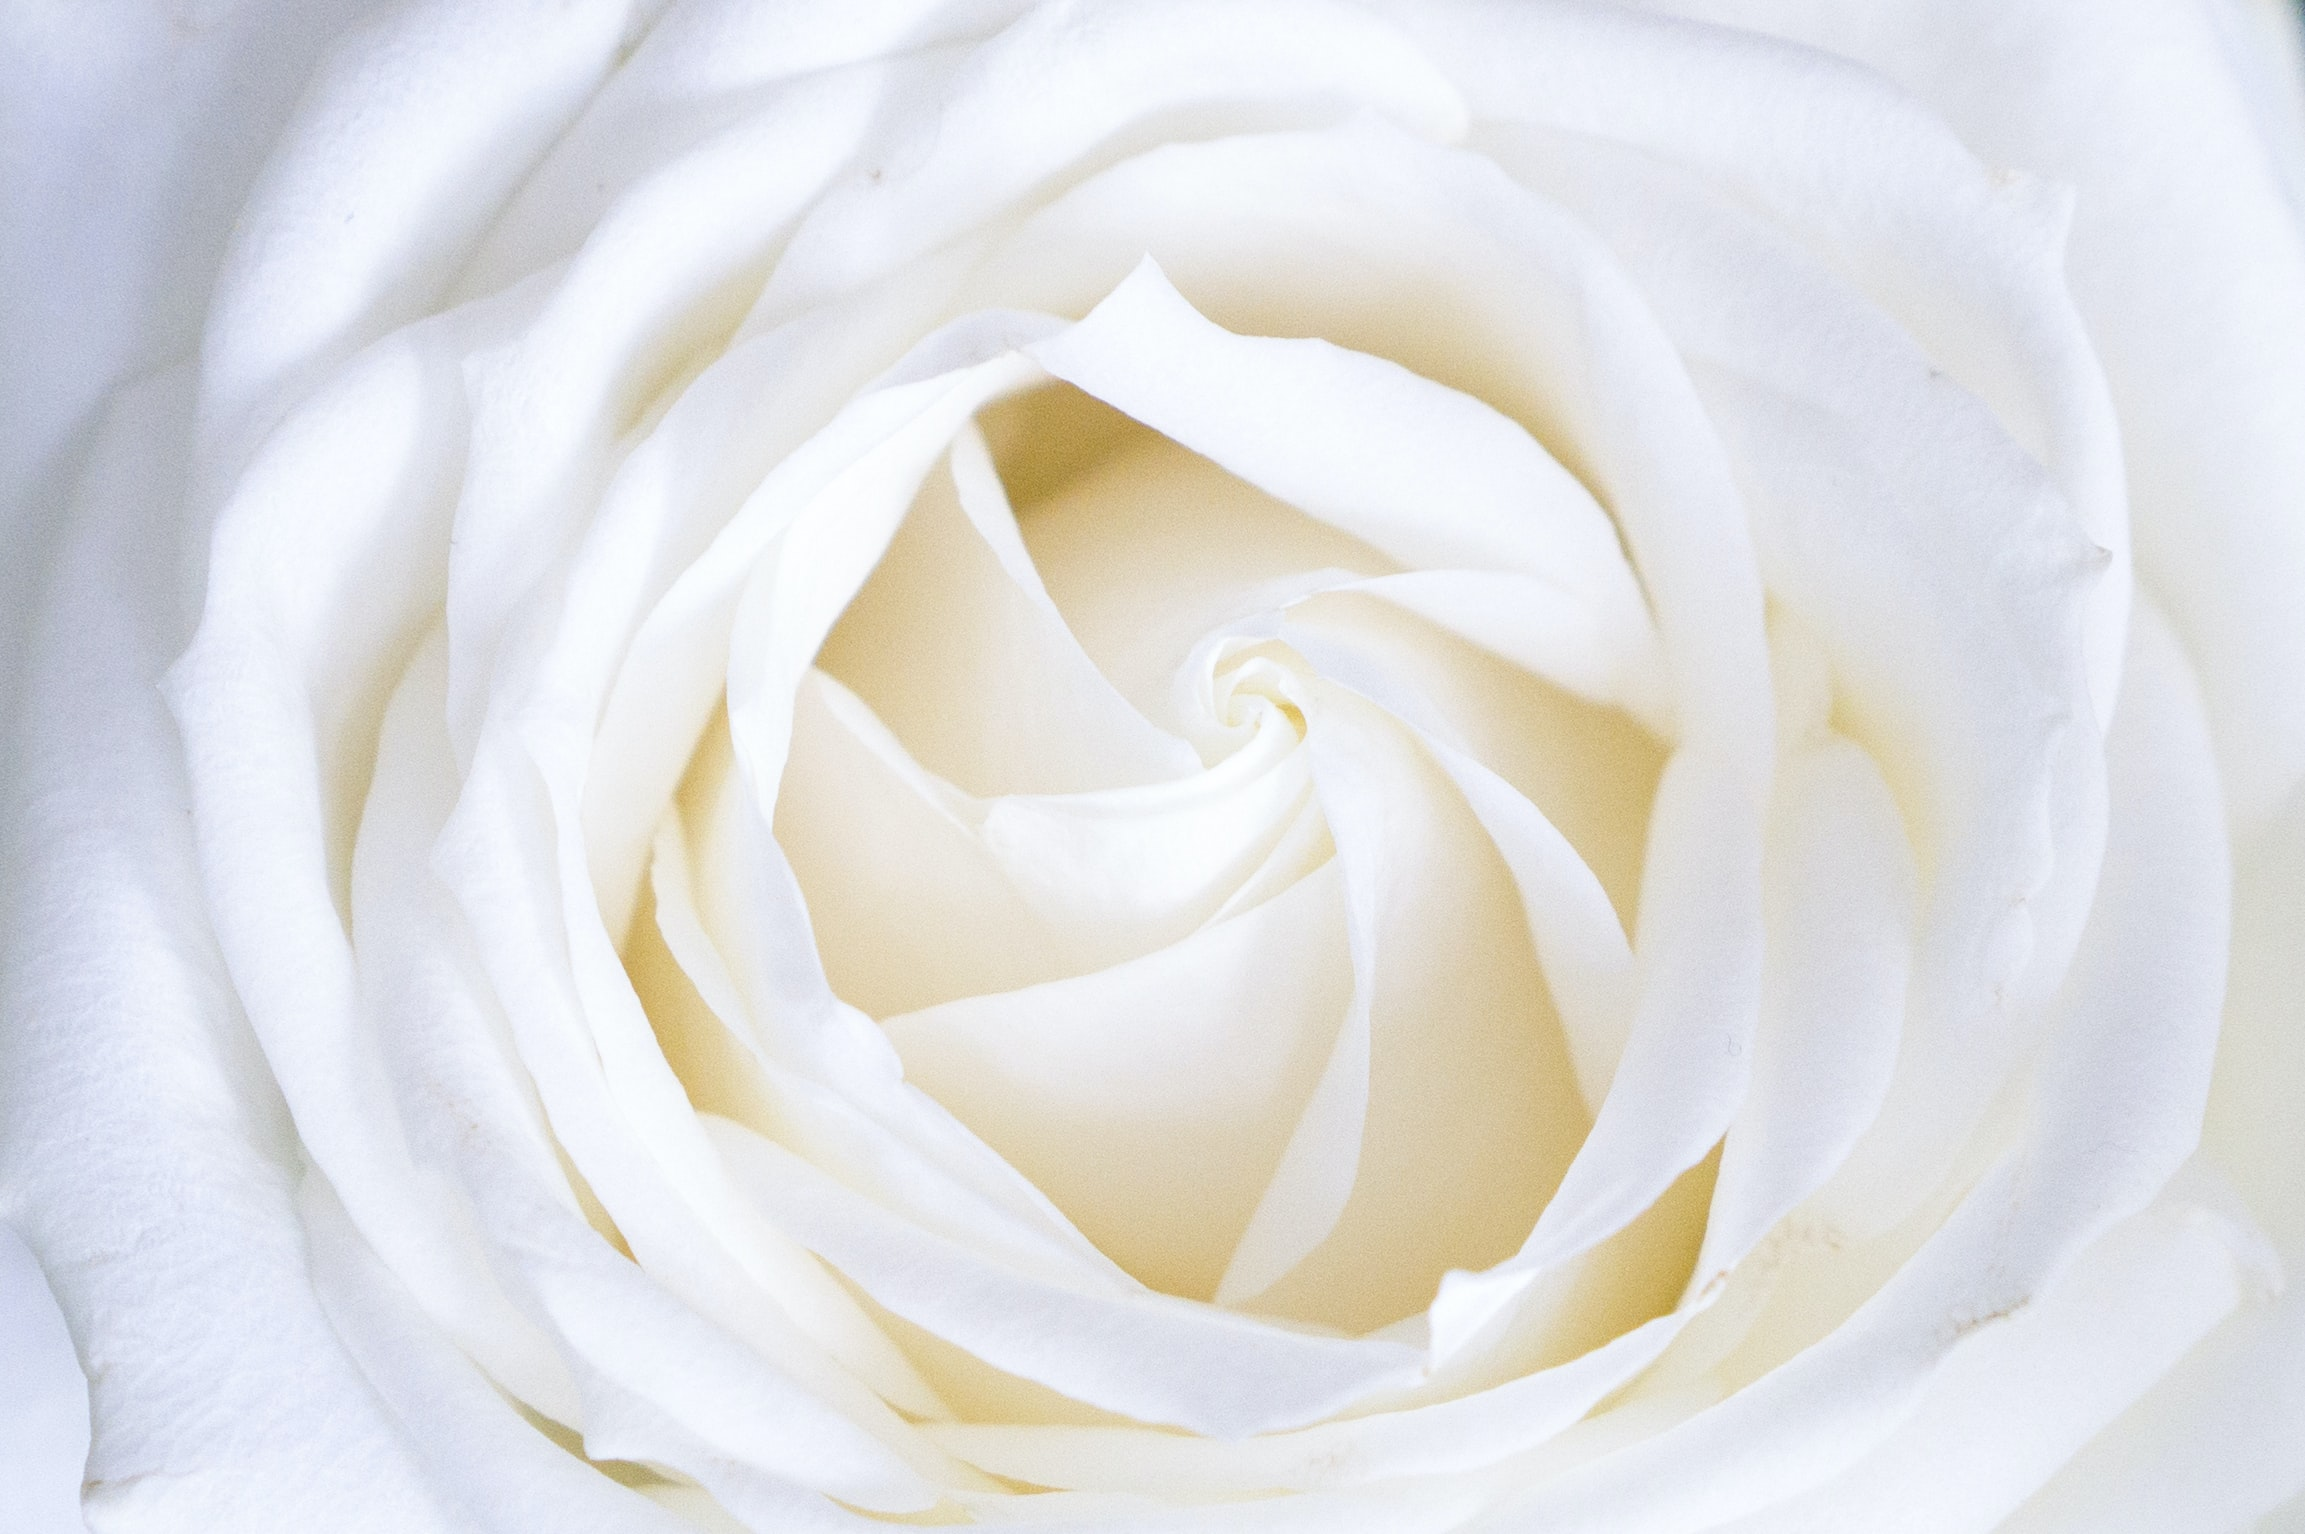 A macro shot of a white rose flower